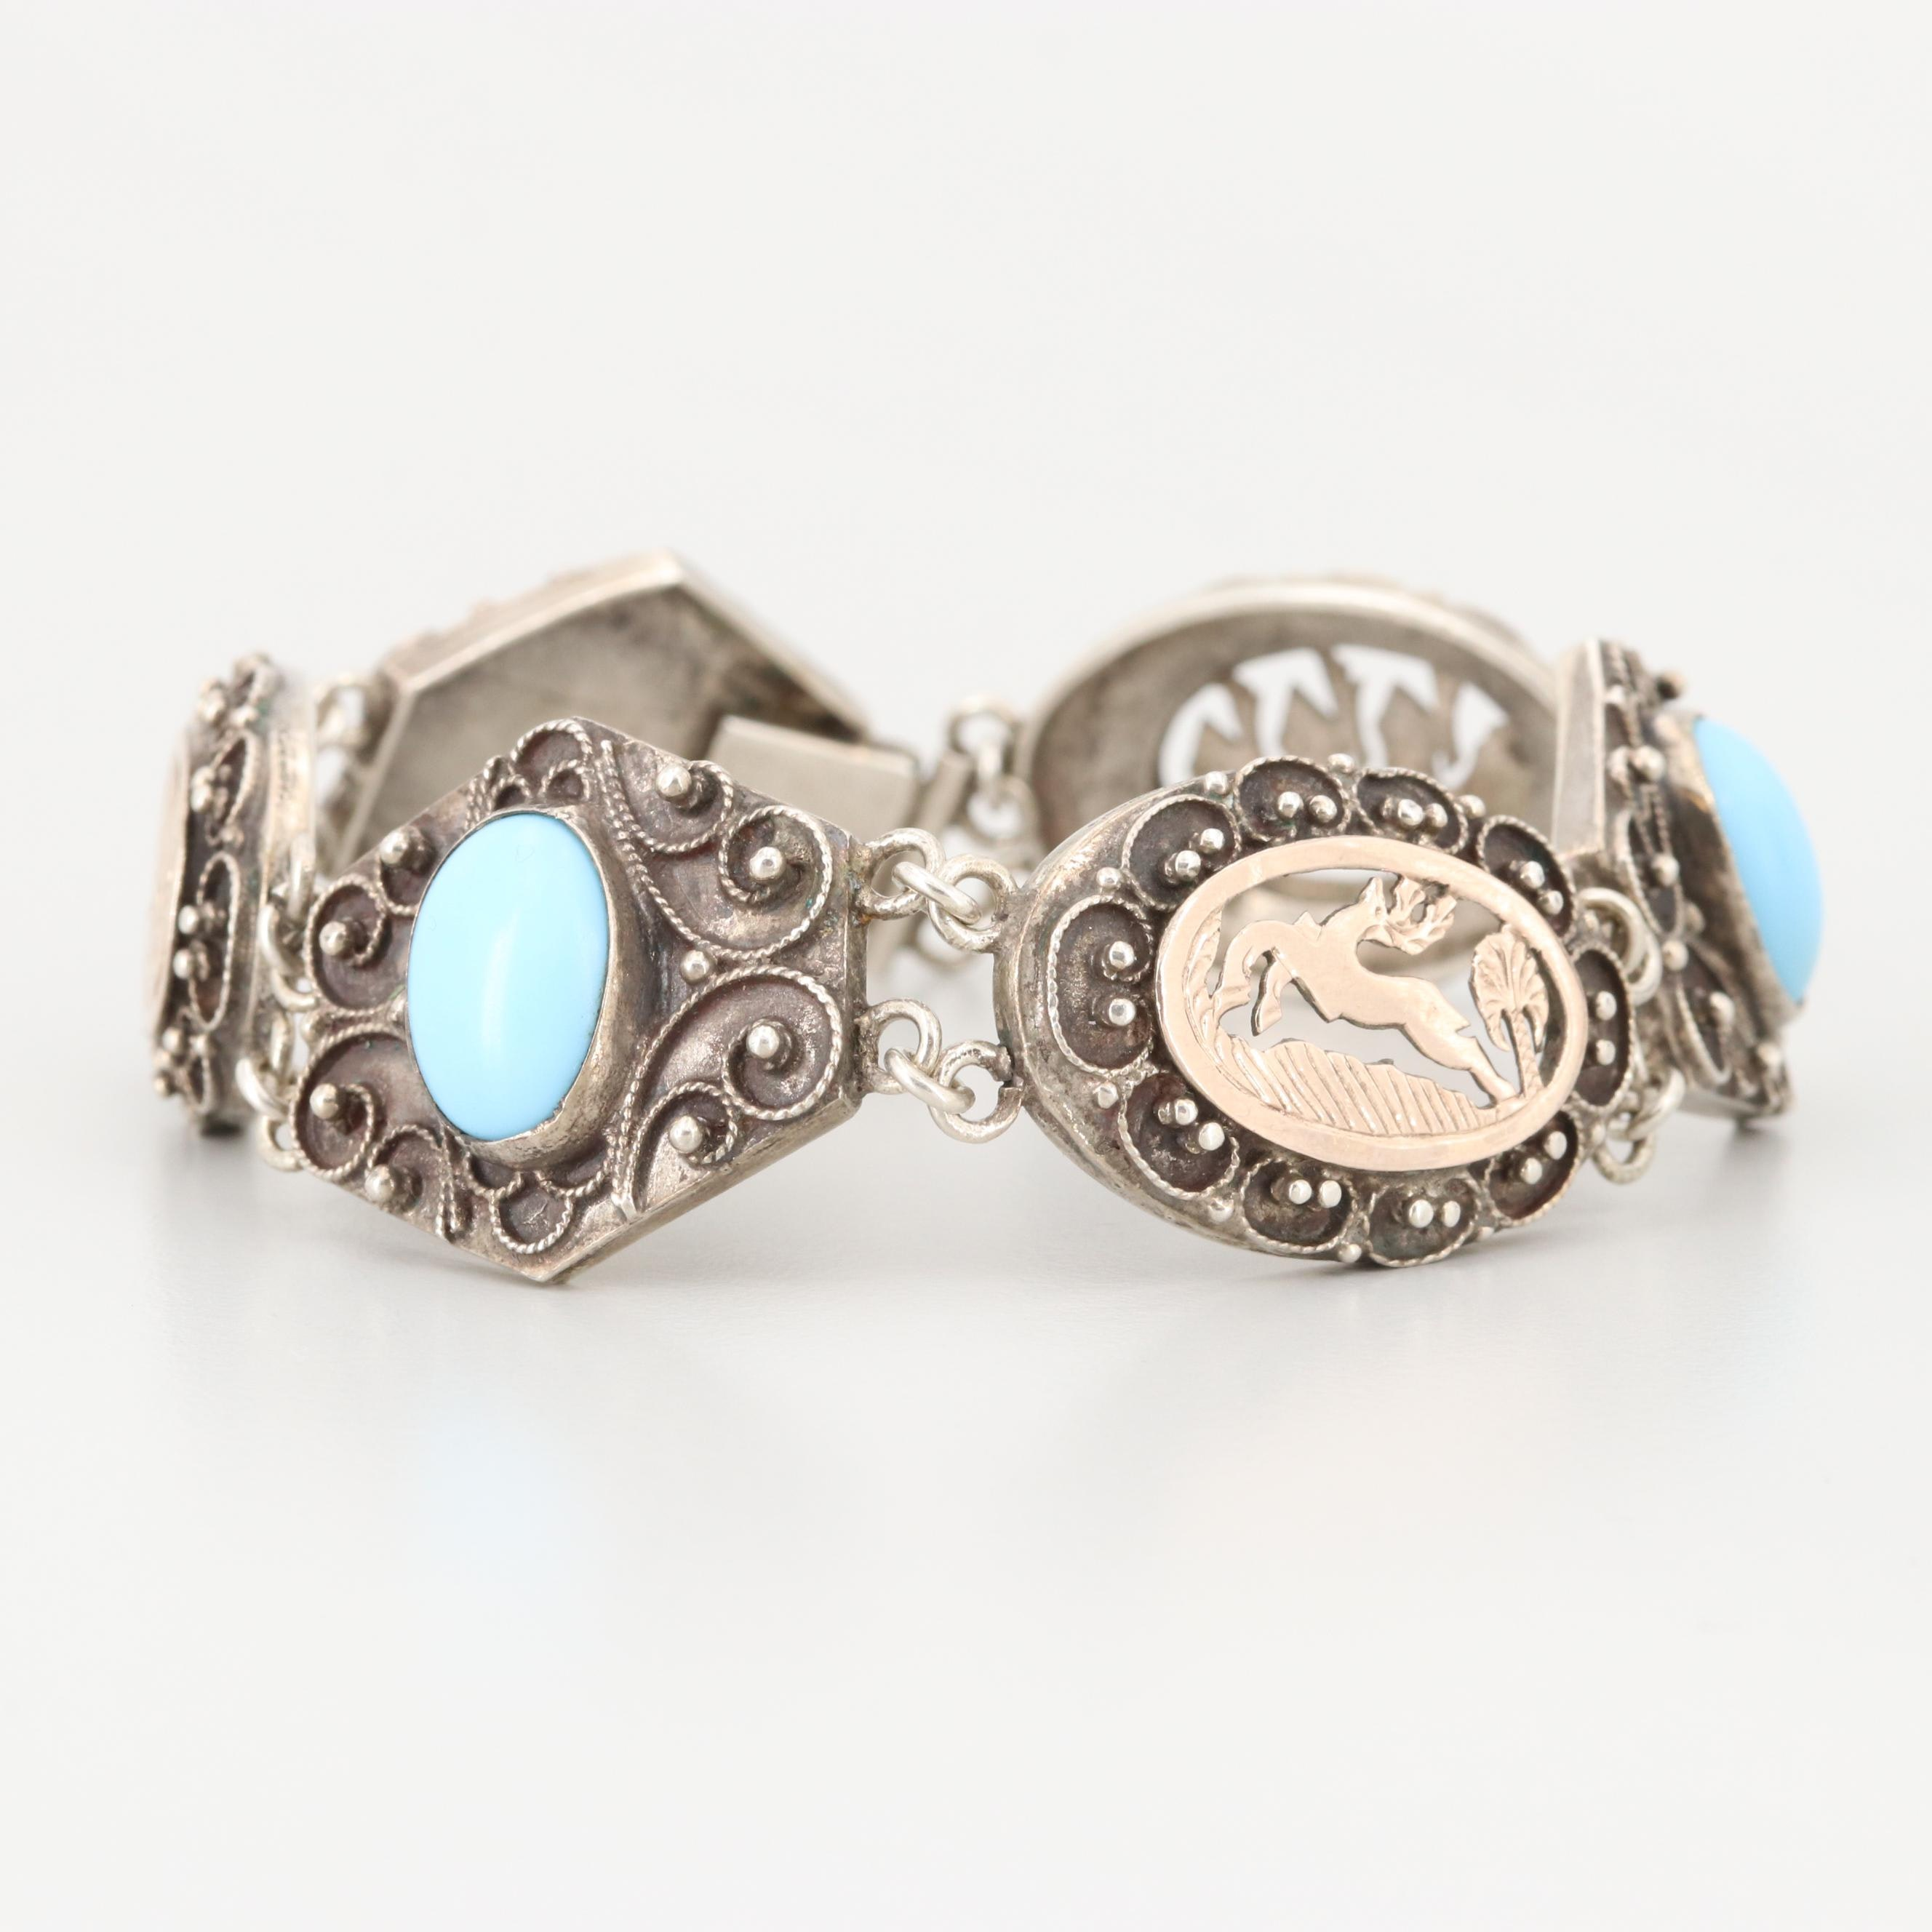 Vintage Sterling Imitation Turquoise Panel Bracelet with Gold Wash Accents